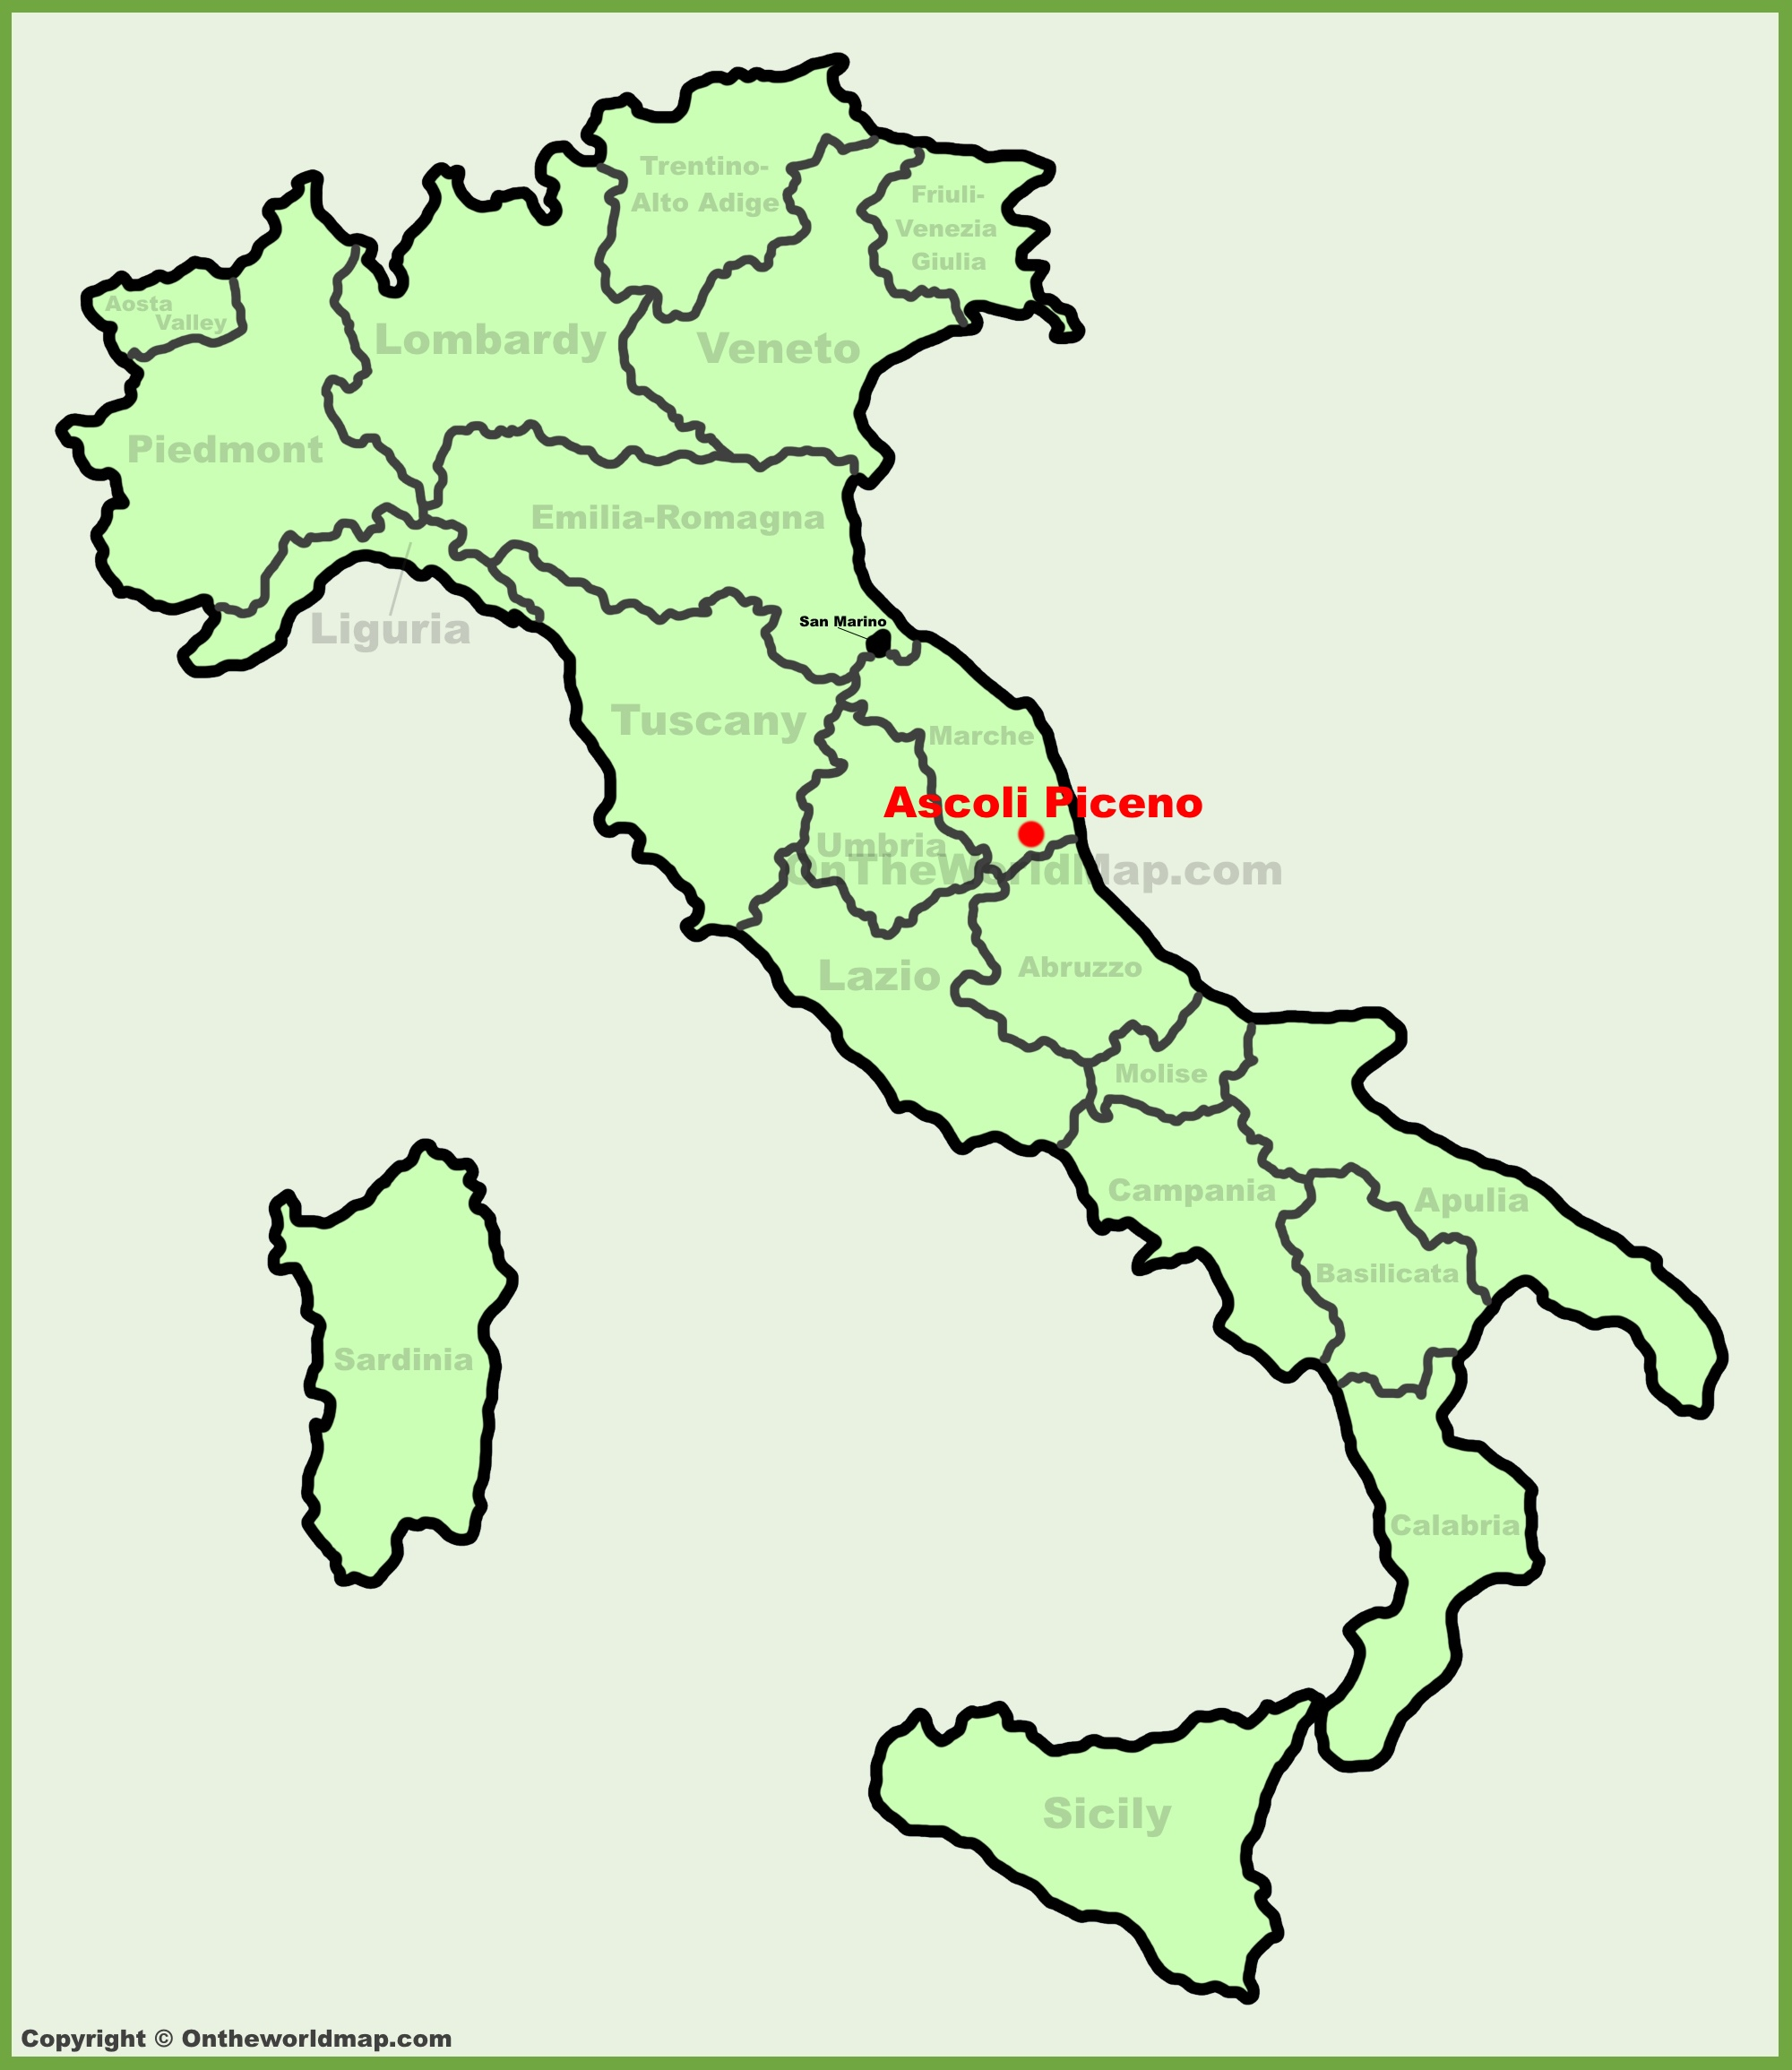 Ascoli Piceno location on the Italy map